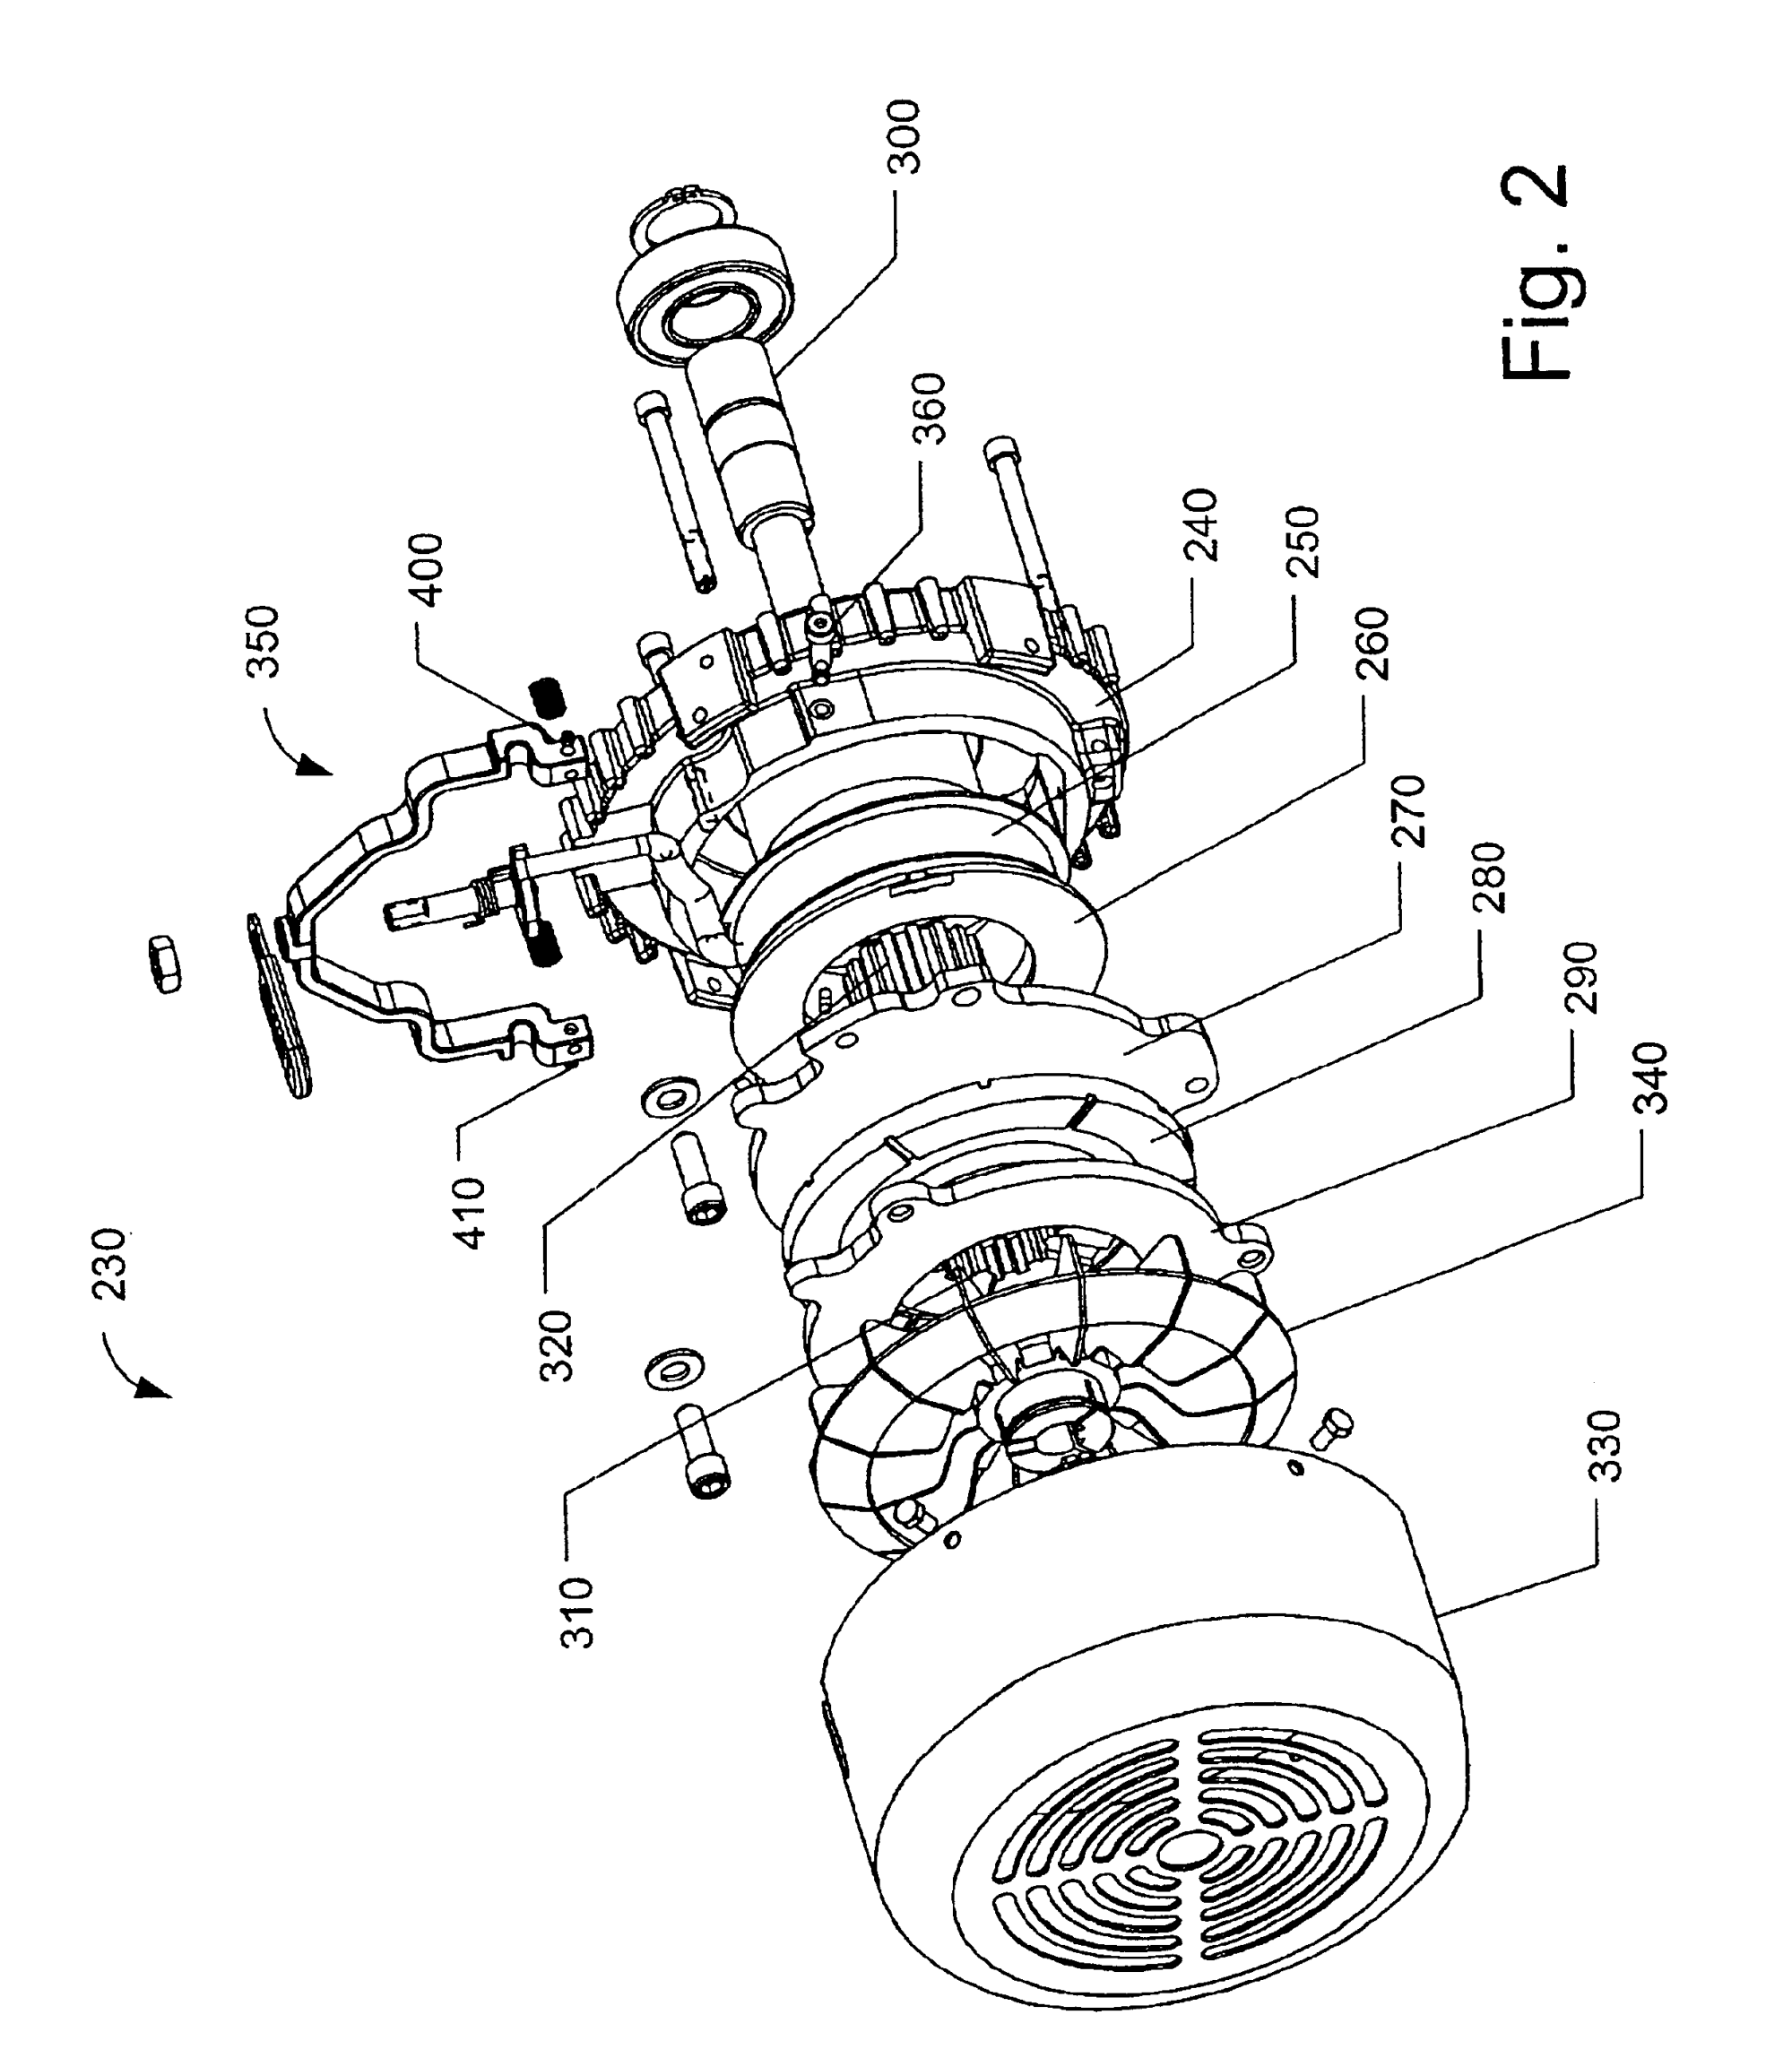 hight resolution of us06781264 20040824 d00002 patent us6781264 integral field cup and front end shield for baldor reliance motor wiring diagram